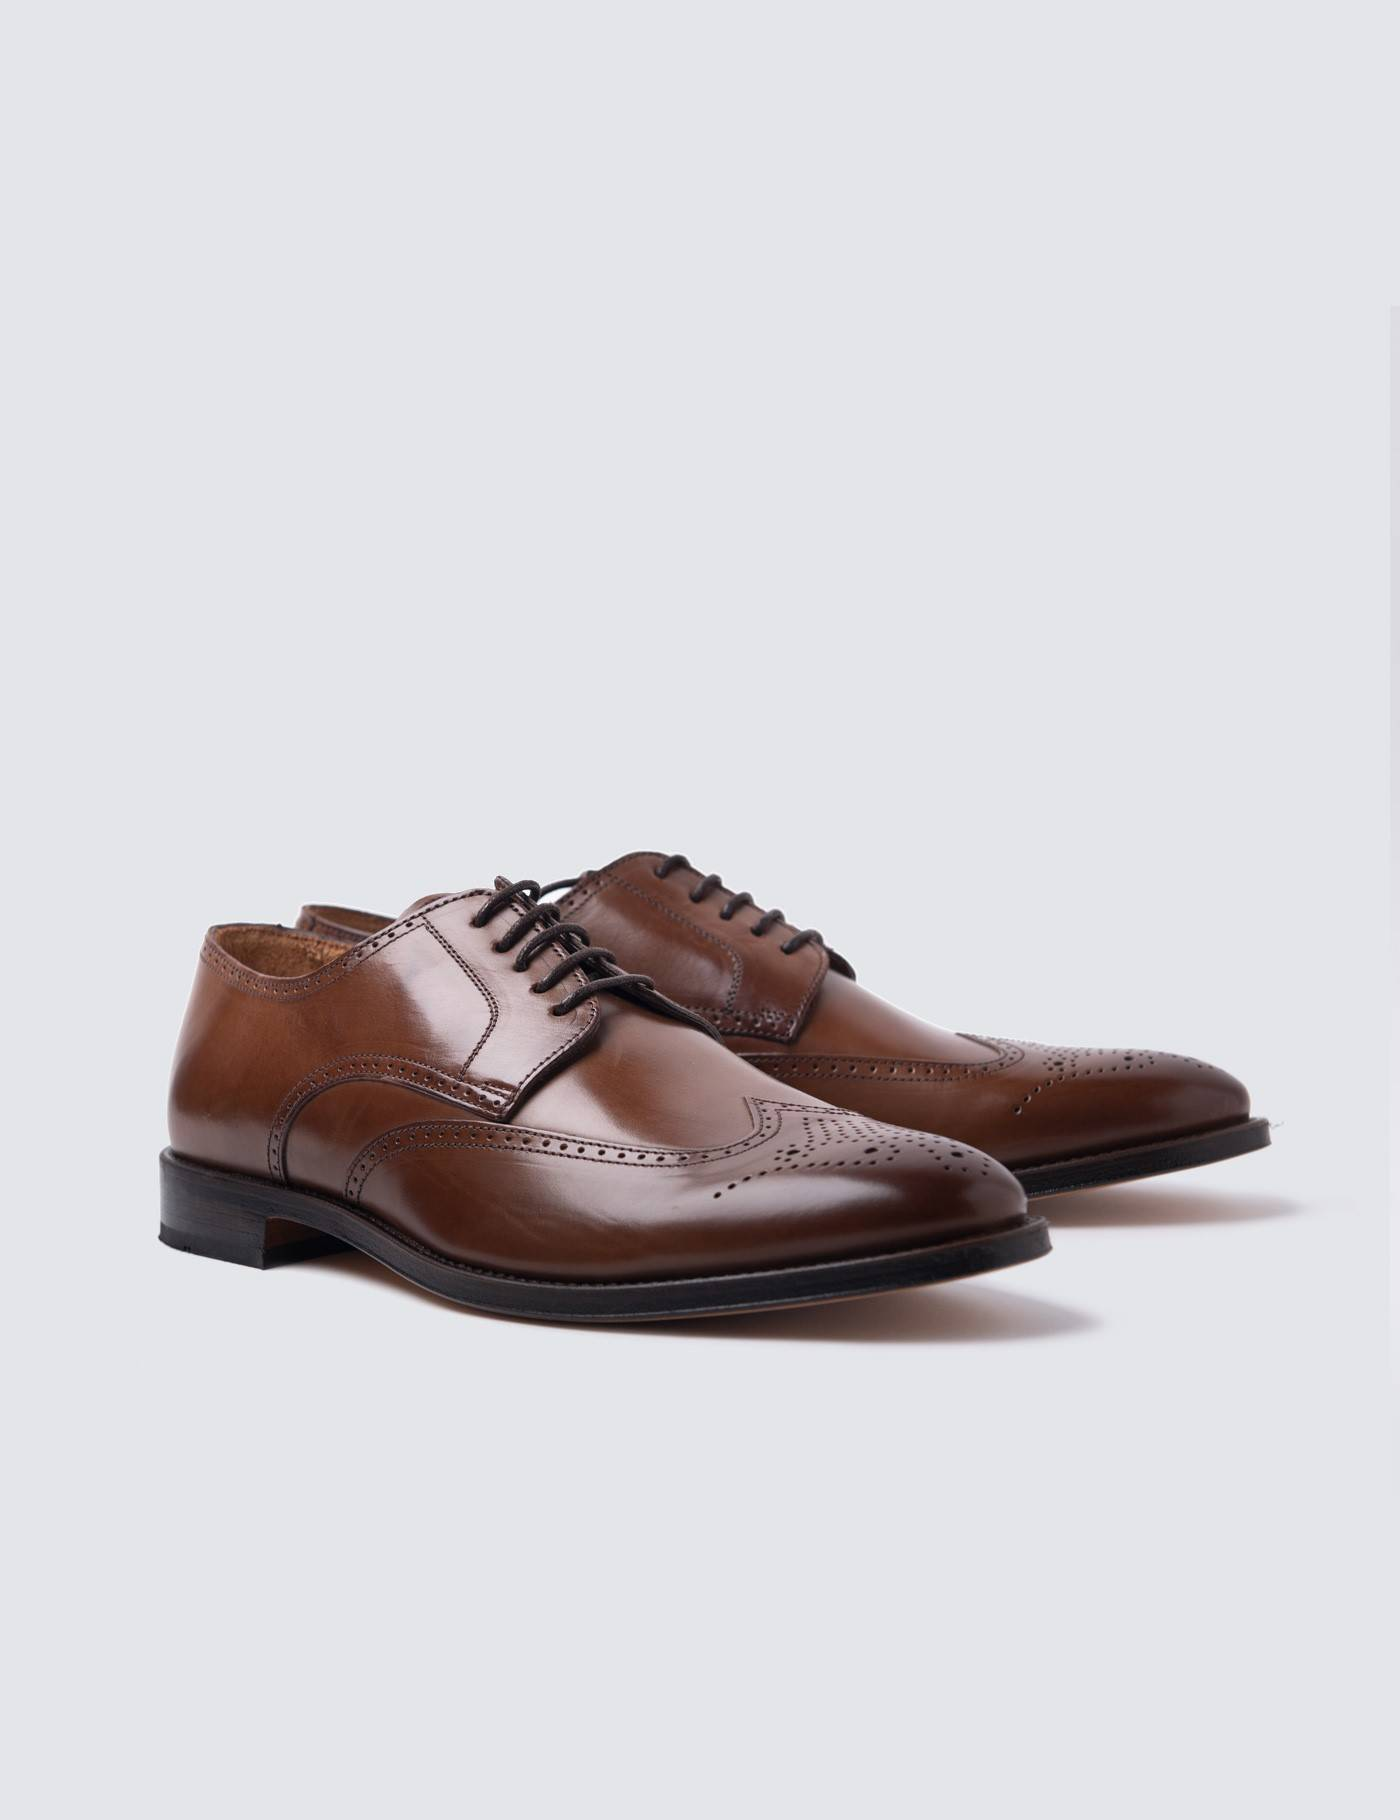 Hawes & Curtis Men's Leather Derby Brogue Shoes in Tan Size 10 Hawes & Curtis